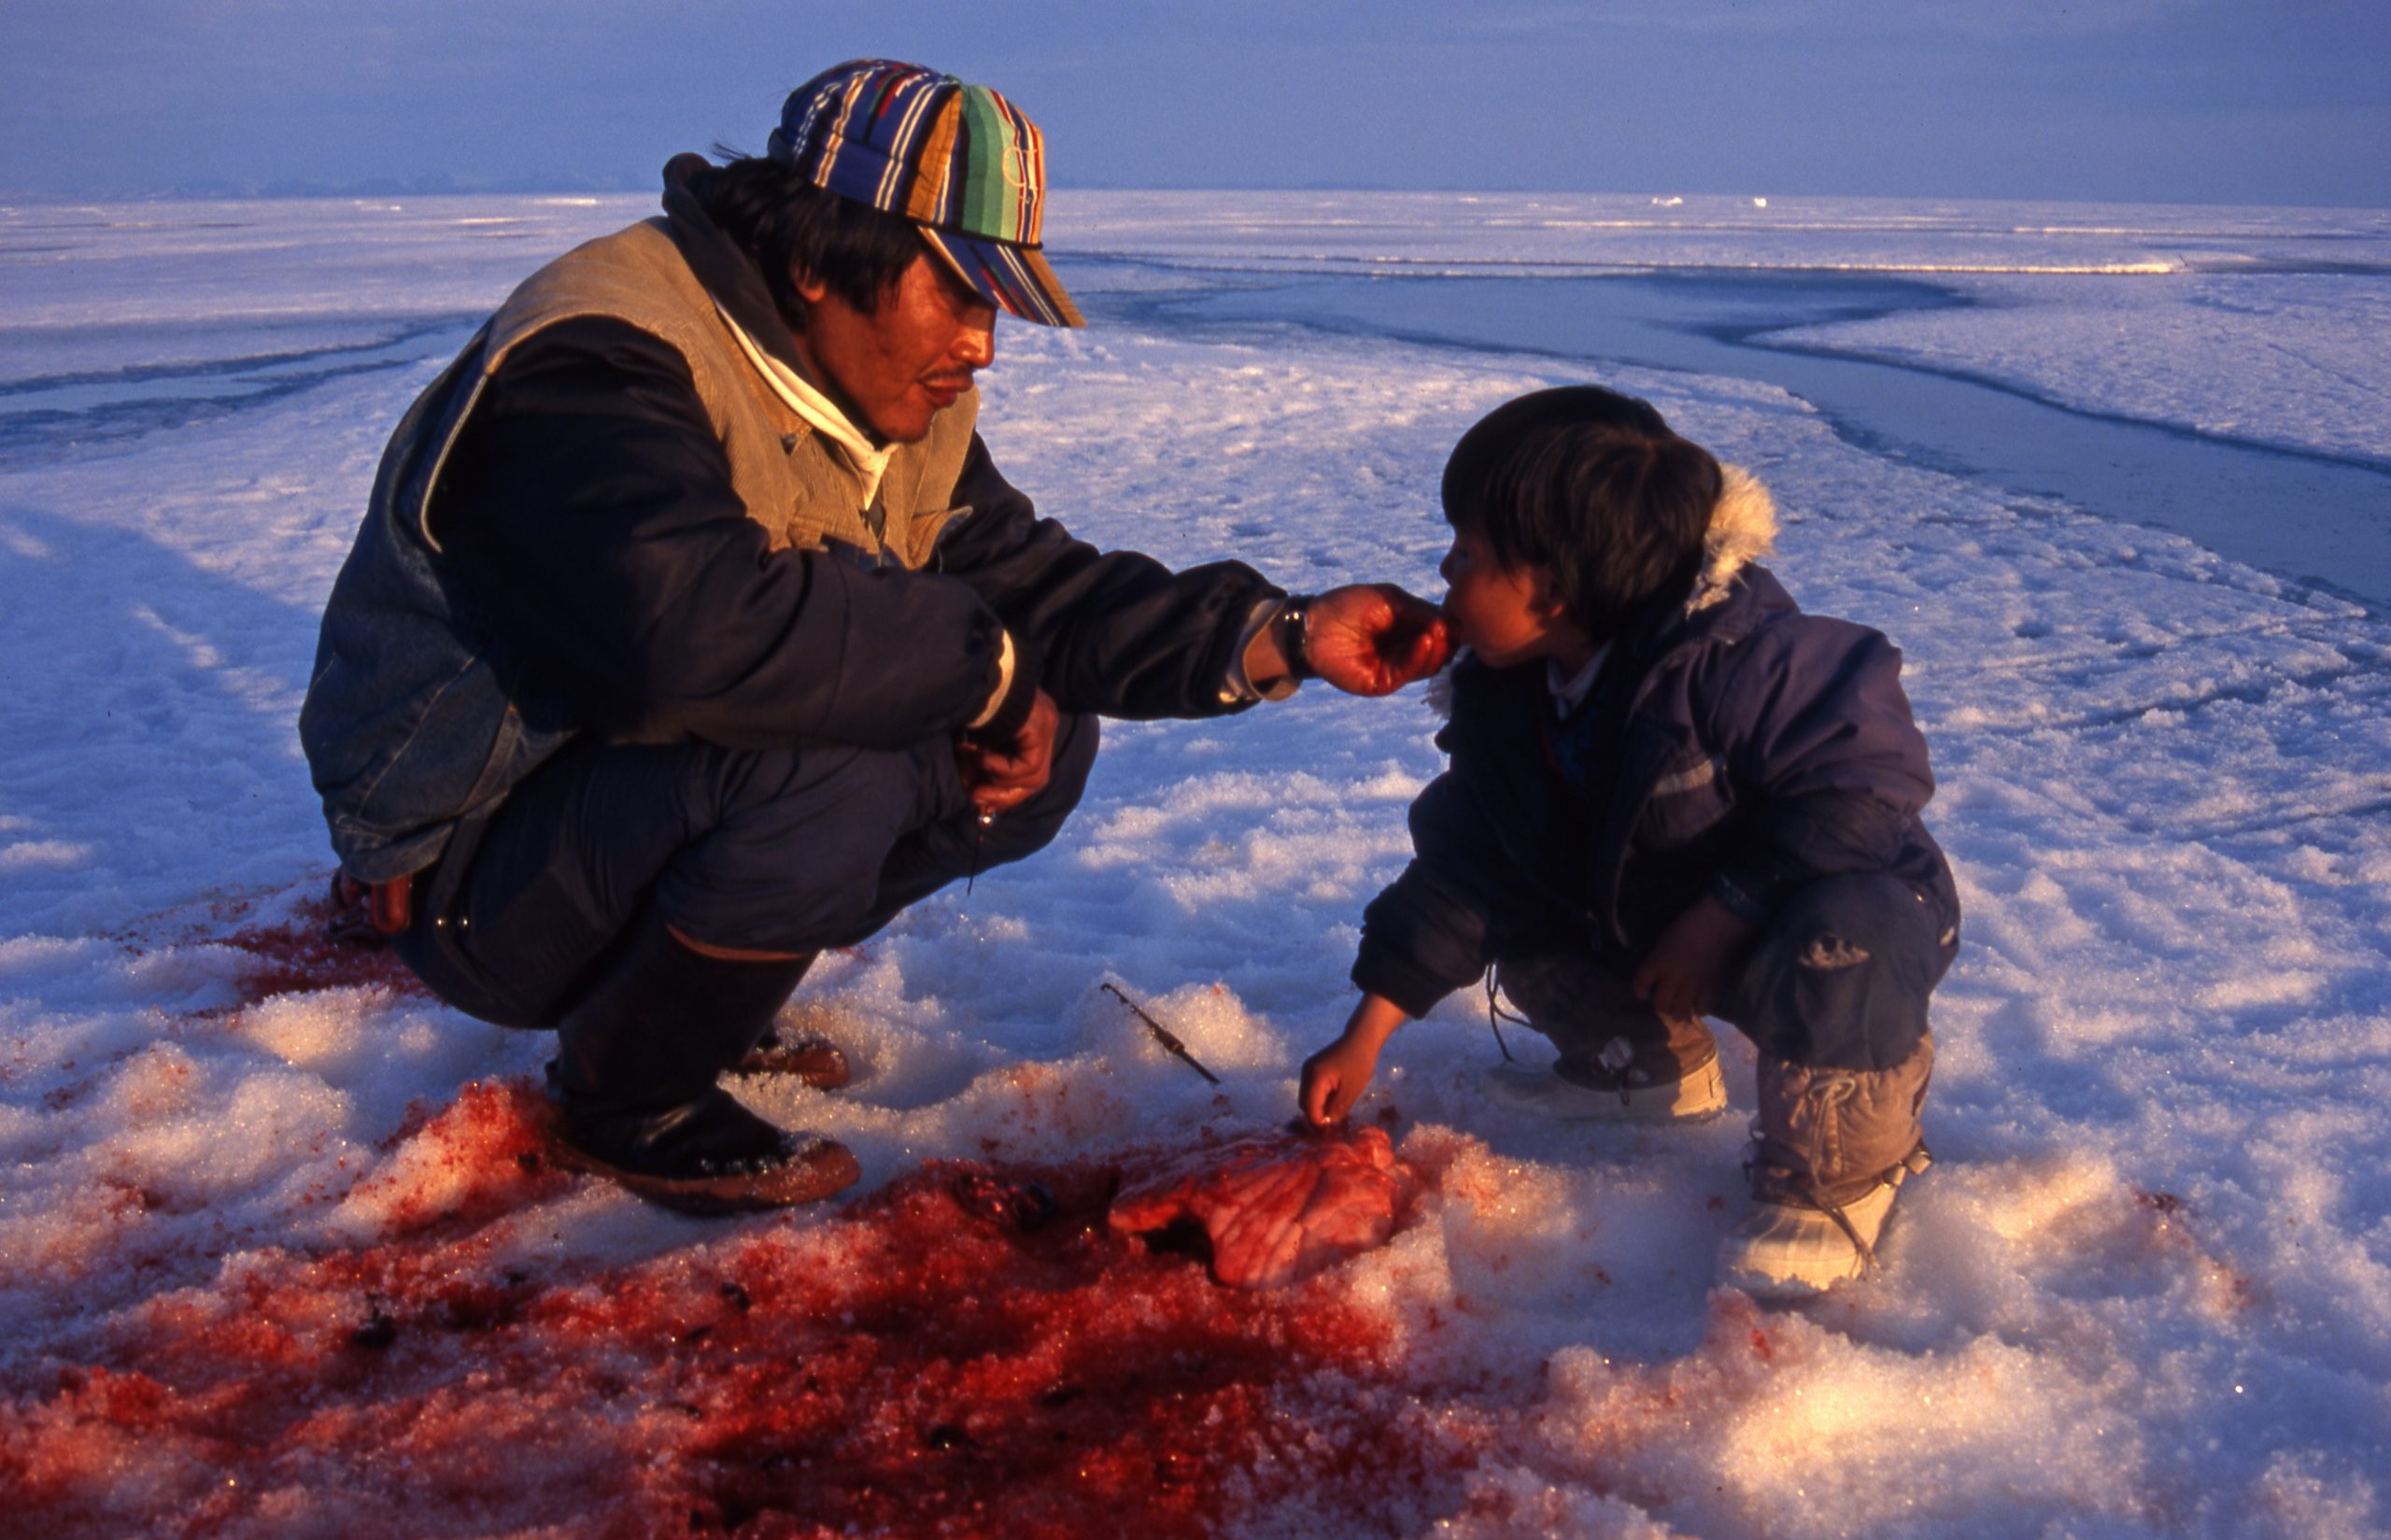 Inuit hunter feeds his child with meat from freshly hunted ring seal, Pond Inlet, Canada. Photo credits to: GRID-Arendal